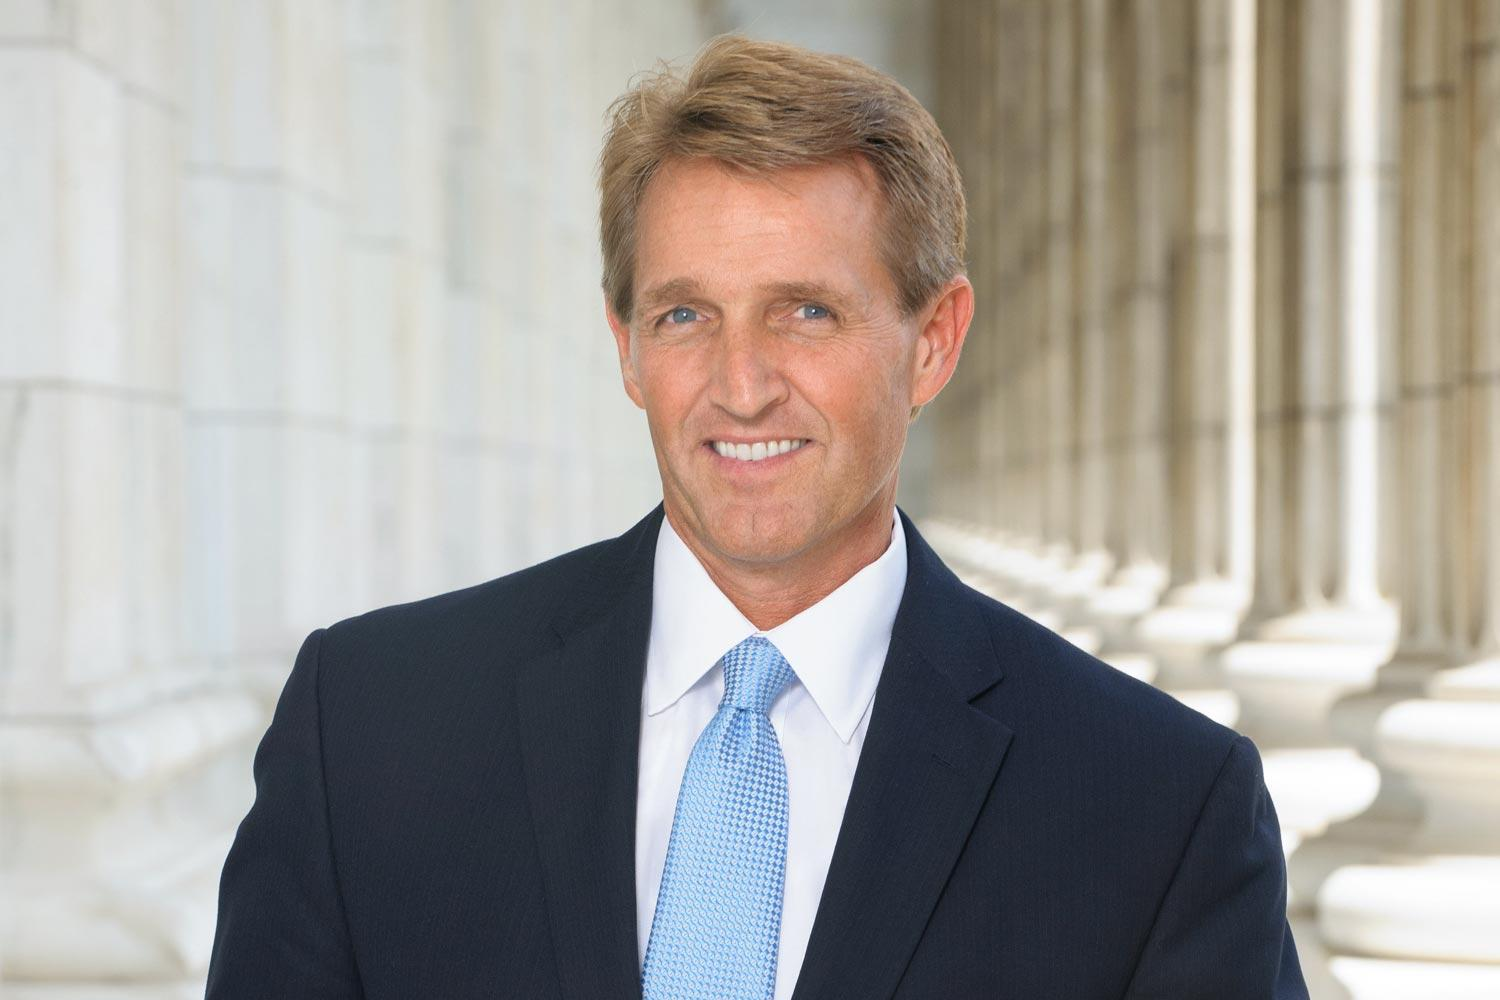 Former U.S. Sen. Jeff Flake will give a lecture in the Rotunda Friday night.